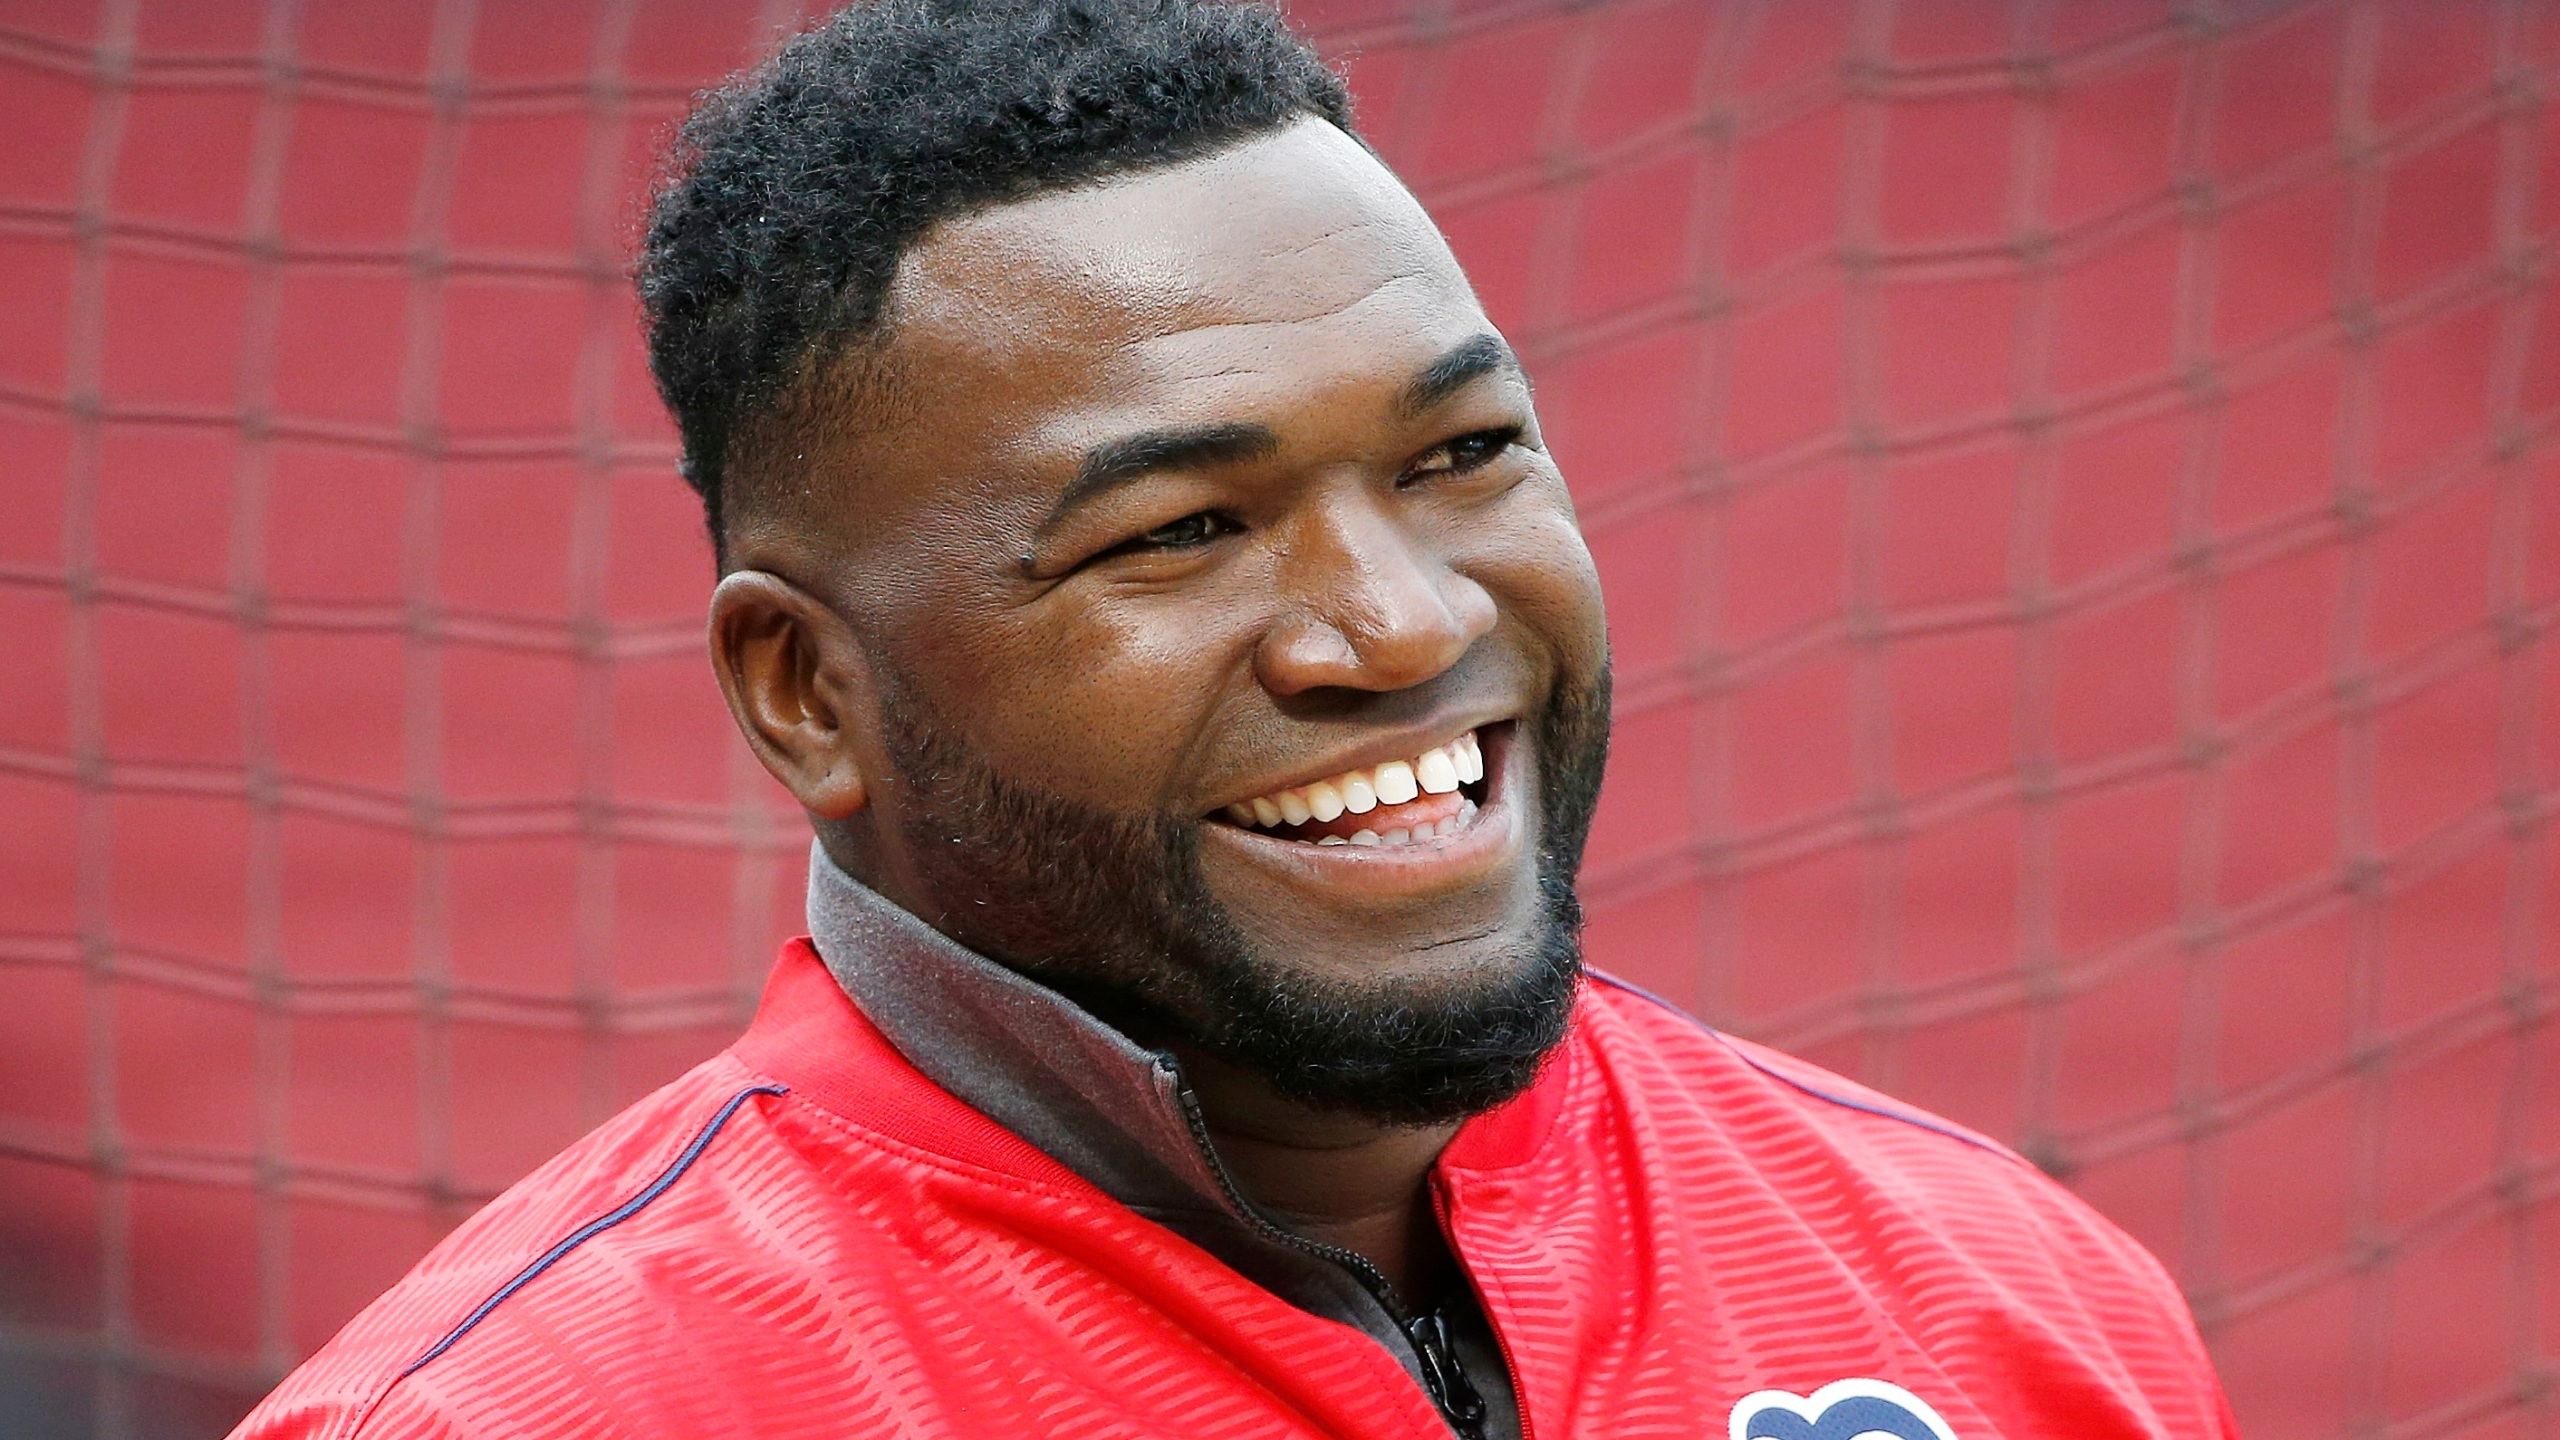 David_Ortiz_Shot_Baseball_26592-159532.jpg79136332